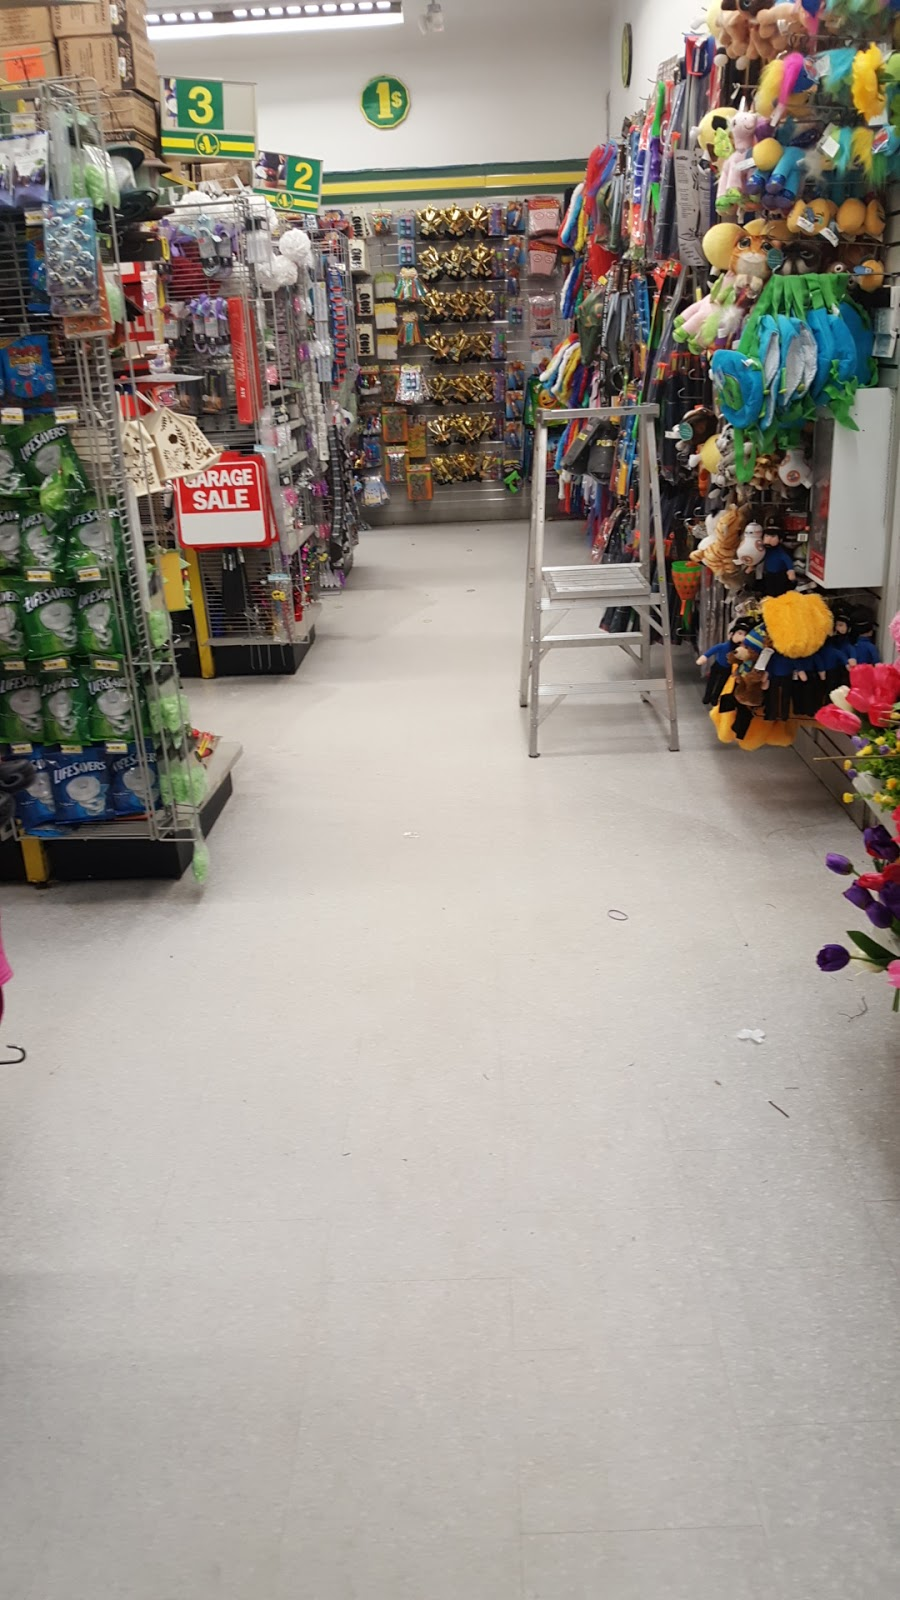 Dollarama | store | 4307 130 Ave. SE, South Trail Crossing, Calgary, AB T2Z 3V8, Canada | 4037261295 OR +1 403-726-1295